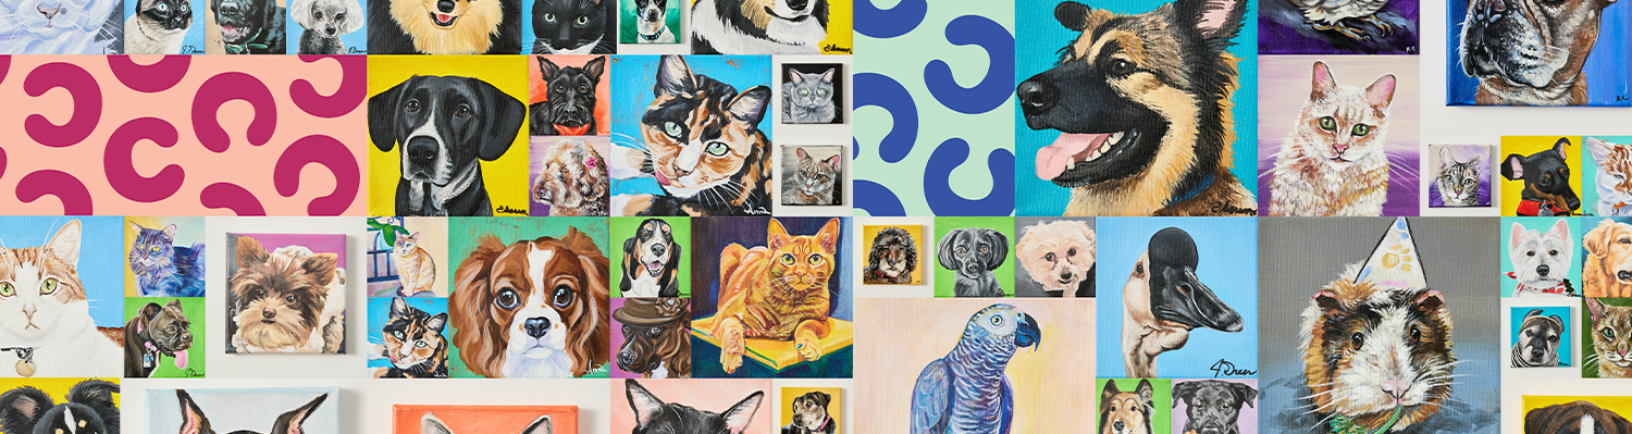 A banner image showing an assortment of painted pet portraits